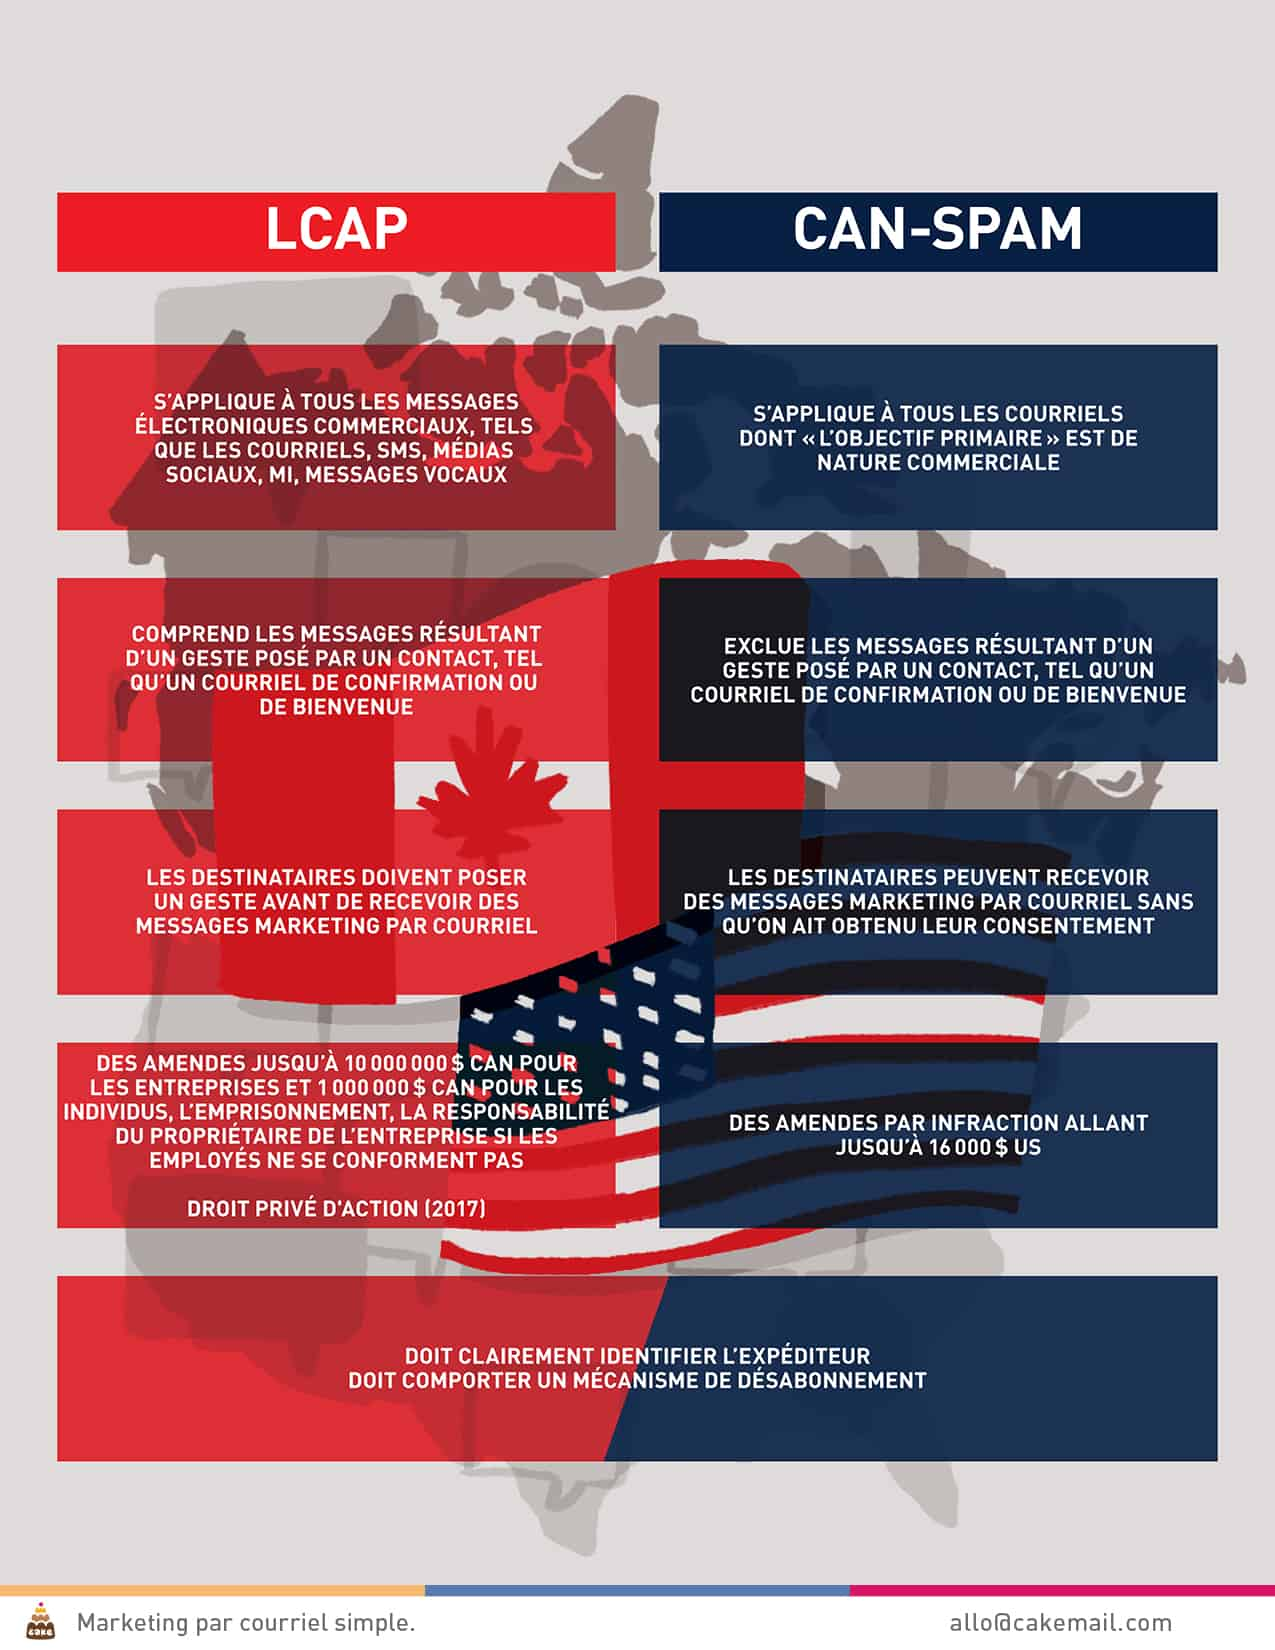 LCAP et CAN-SPAM